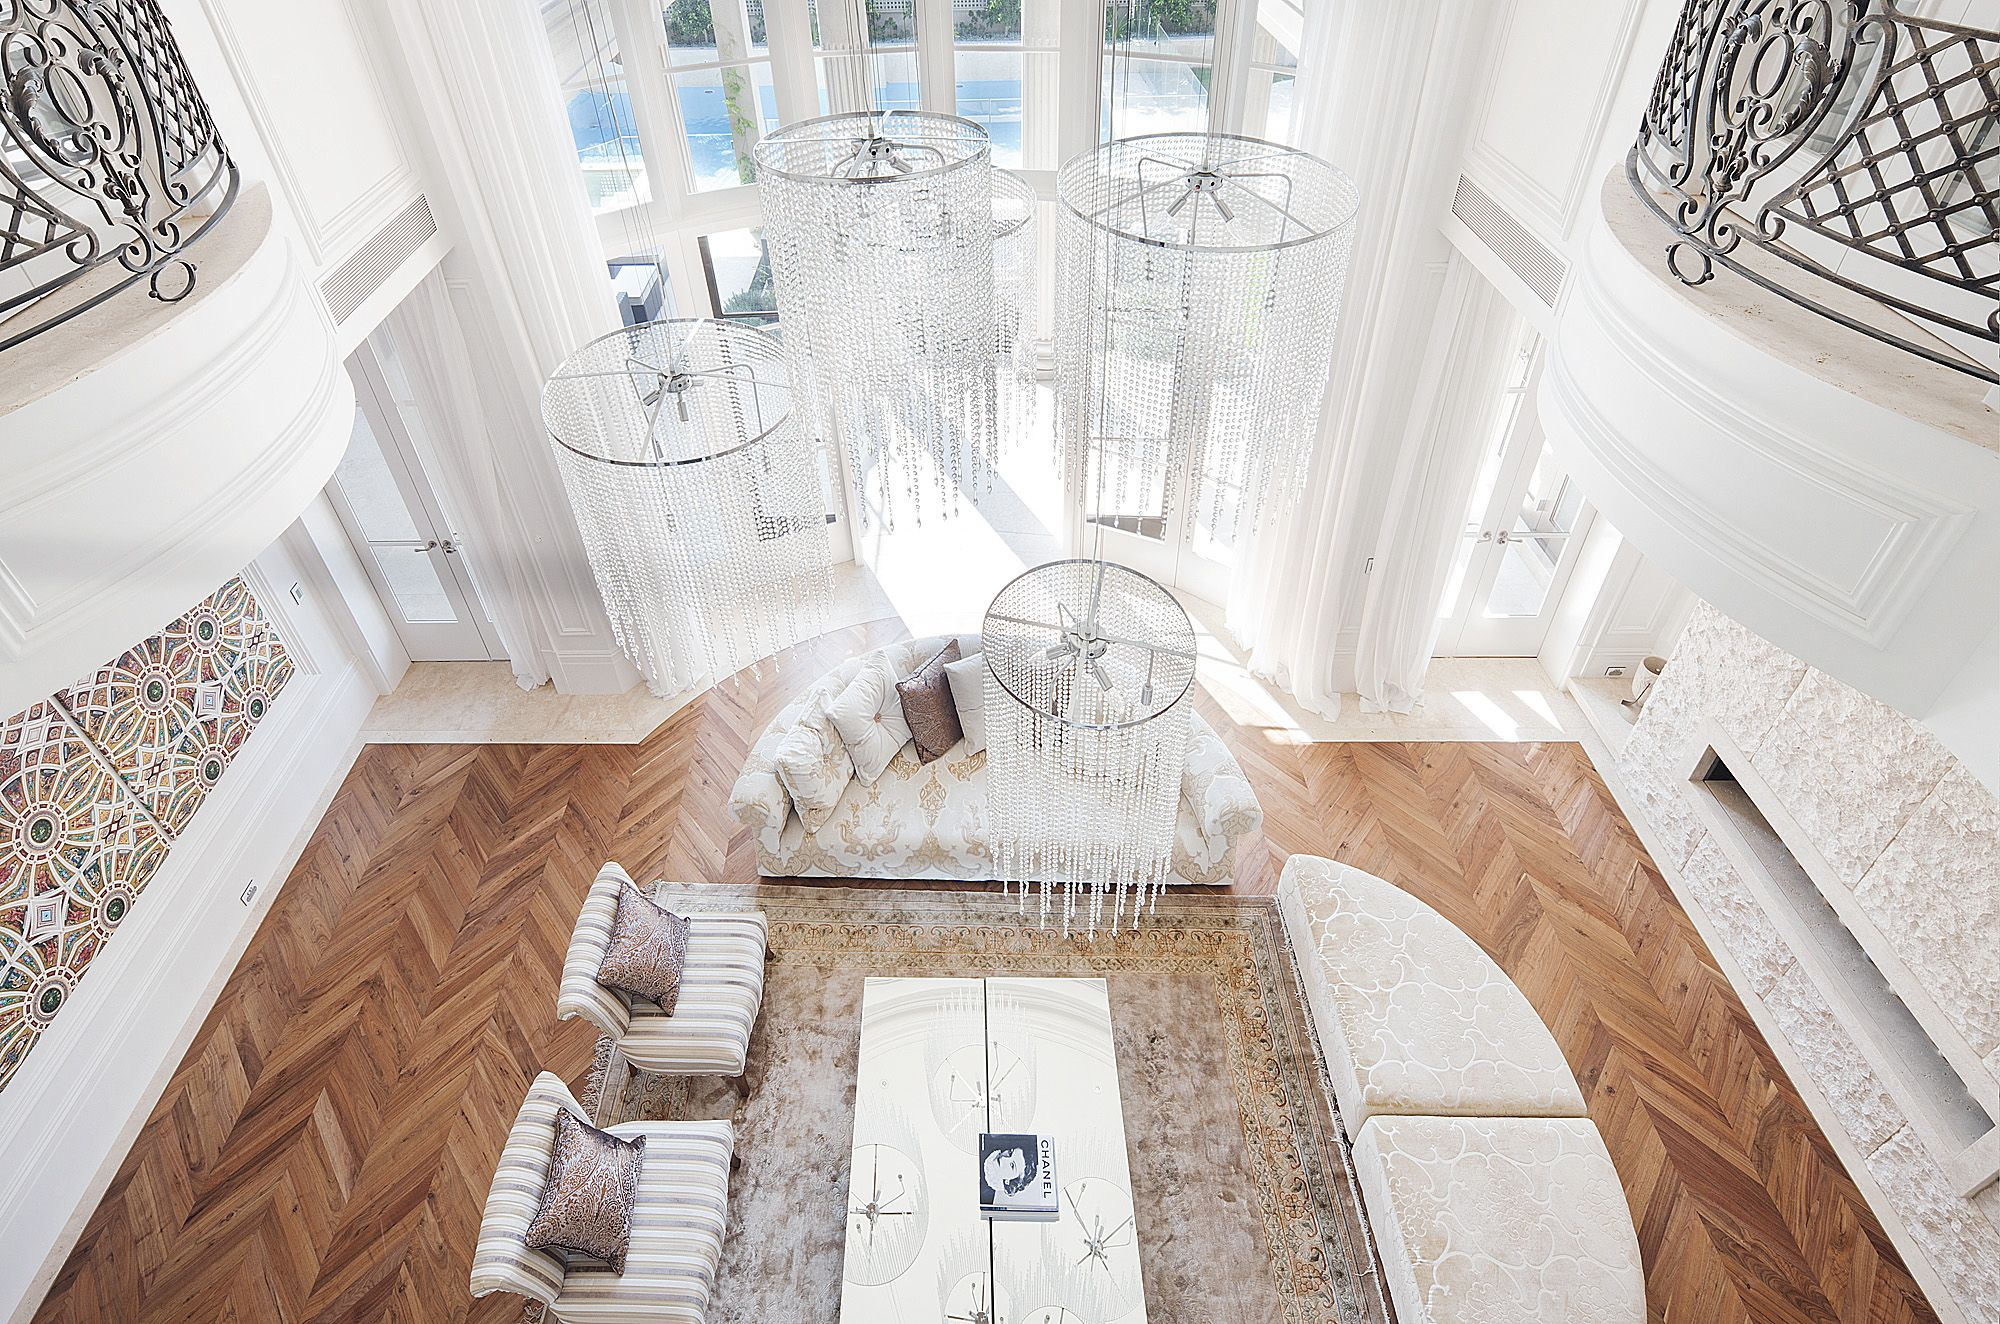 clever french neoclassical interior design by studiomint